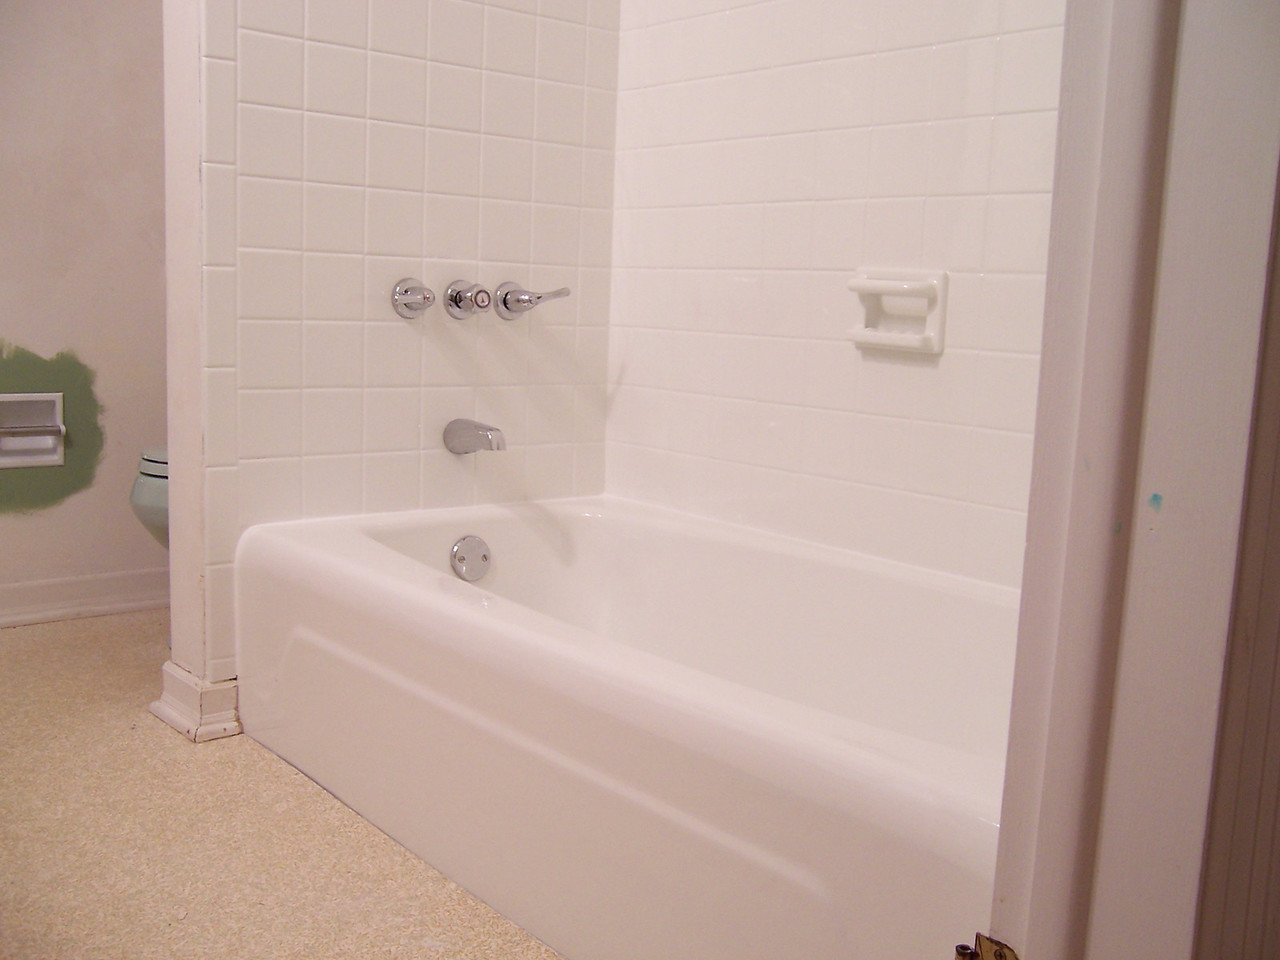 AFTER-As you can see, making the tub and tile white really pulls the entire bathroom together making it much more appealing.